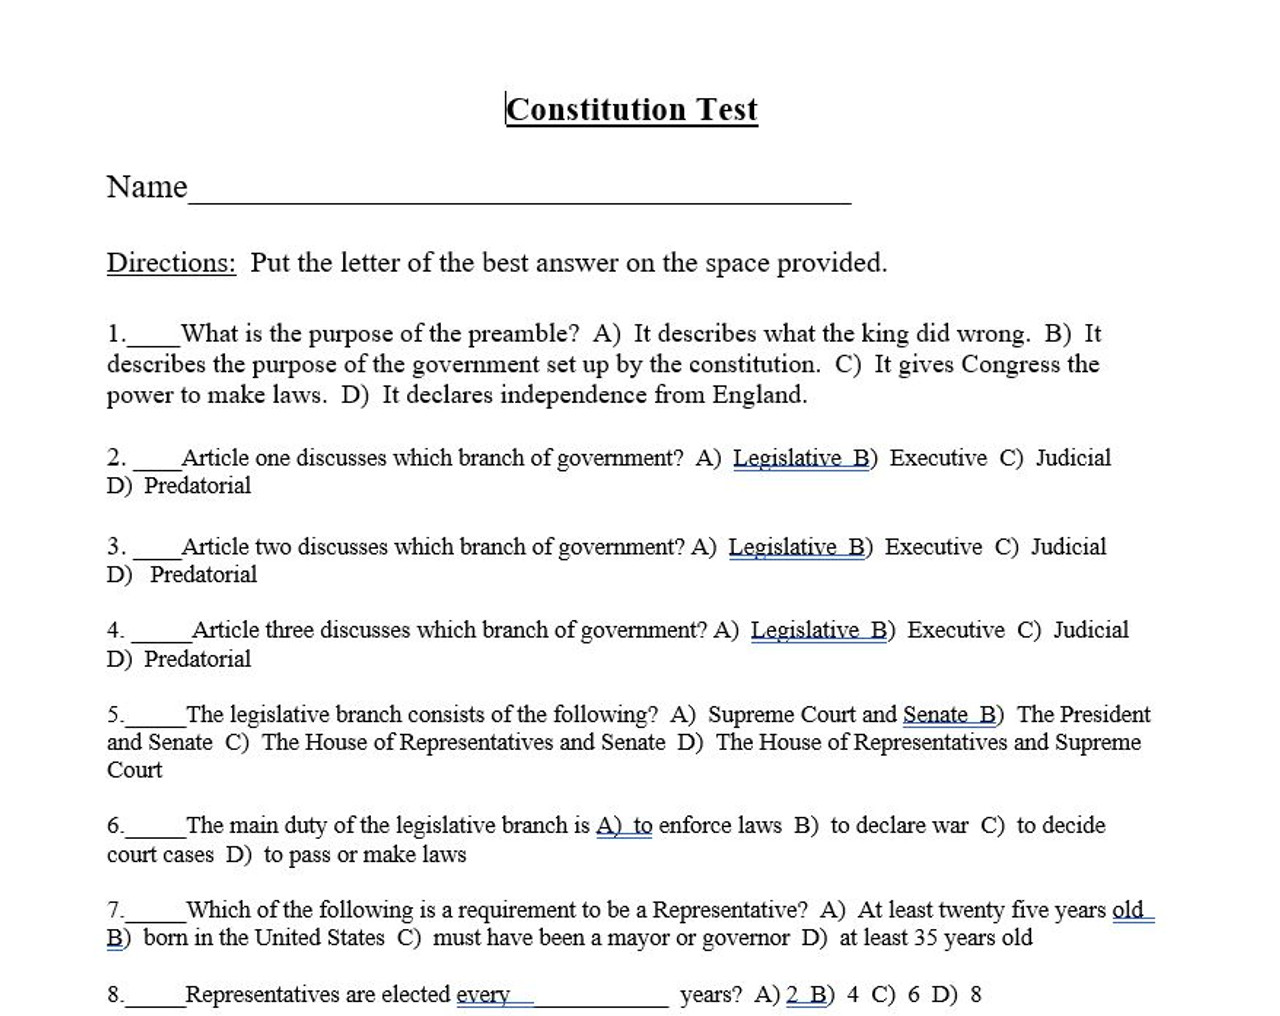 medium resolution of US Constitution Test and Answer Key - Amped Up Learning